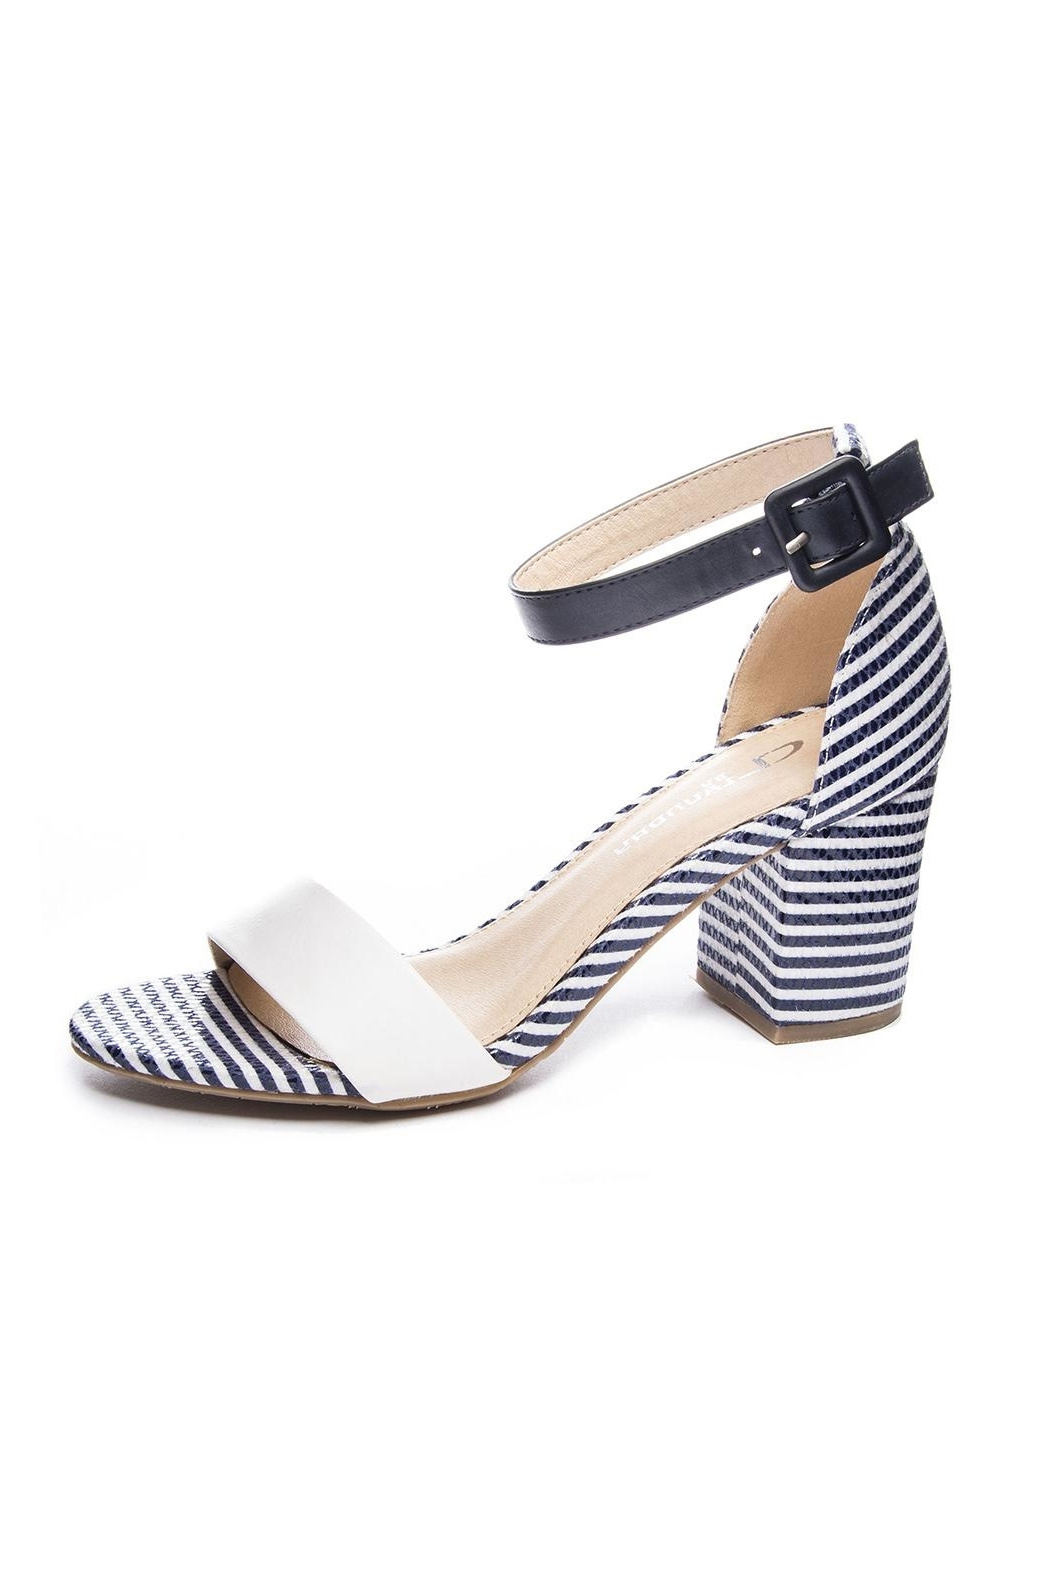 7ea0ee8c2197 Chinese Laundry Navy Stripe Heel from New York by Dor L Dor — Shoptiques